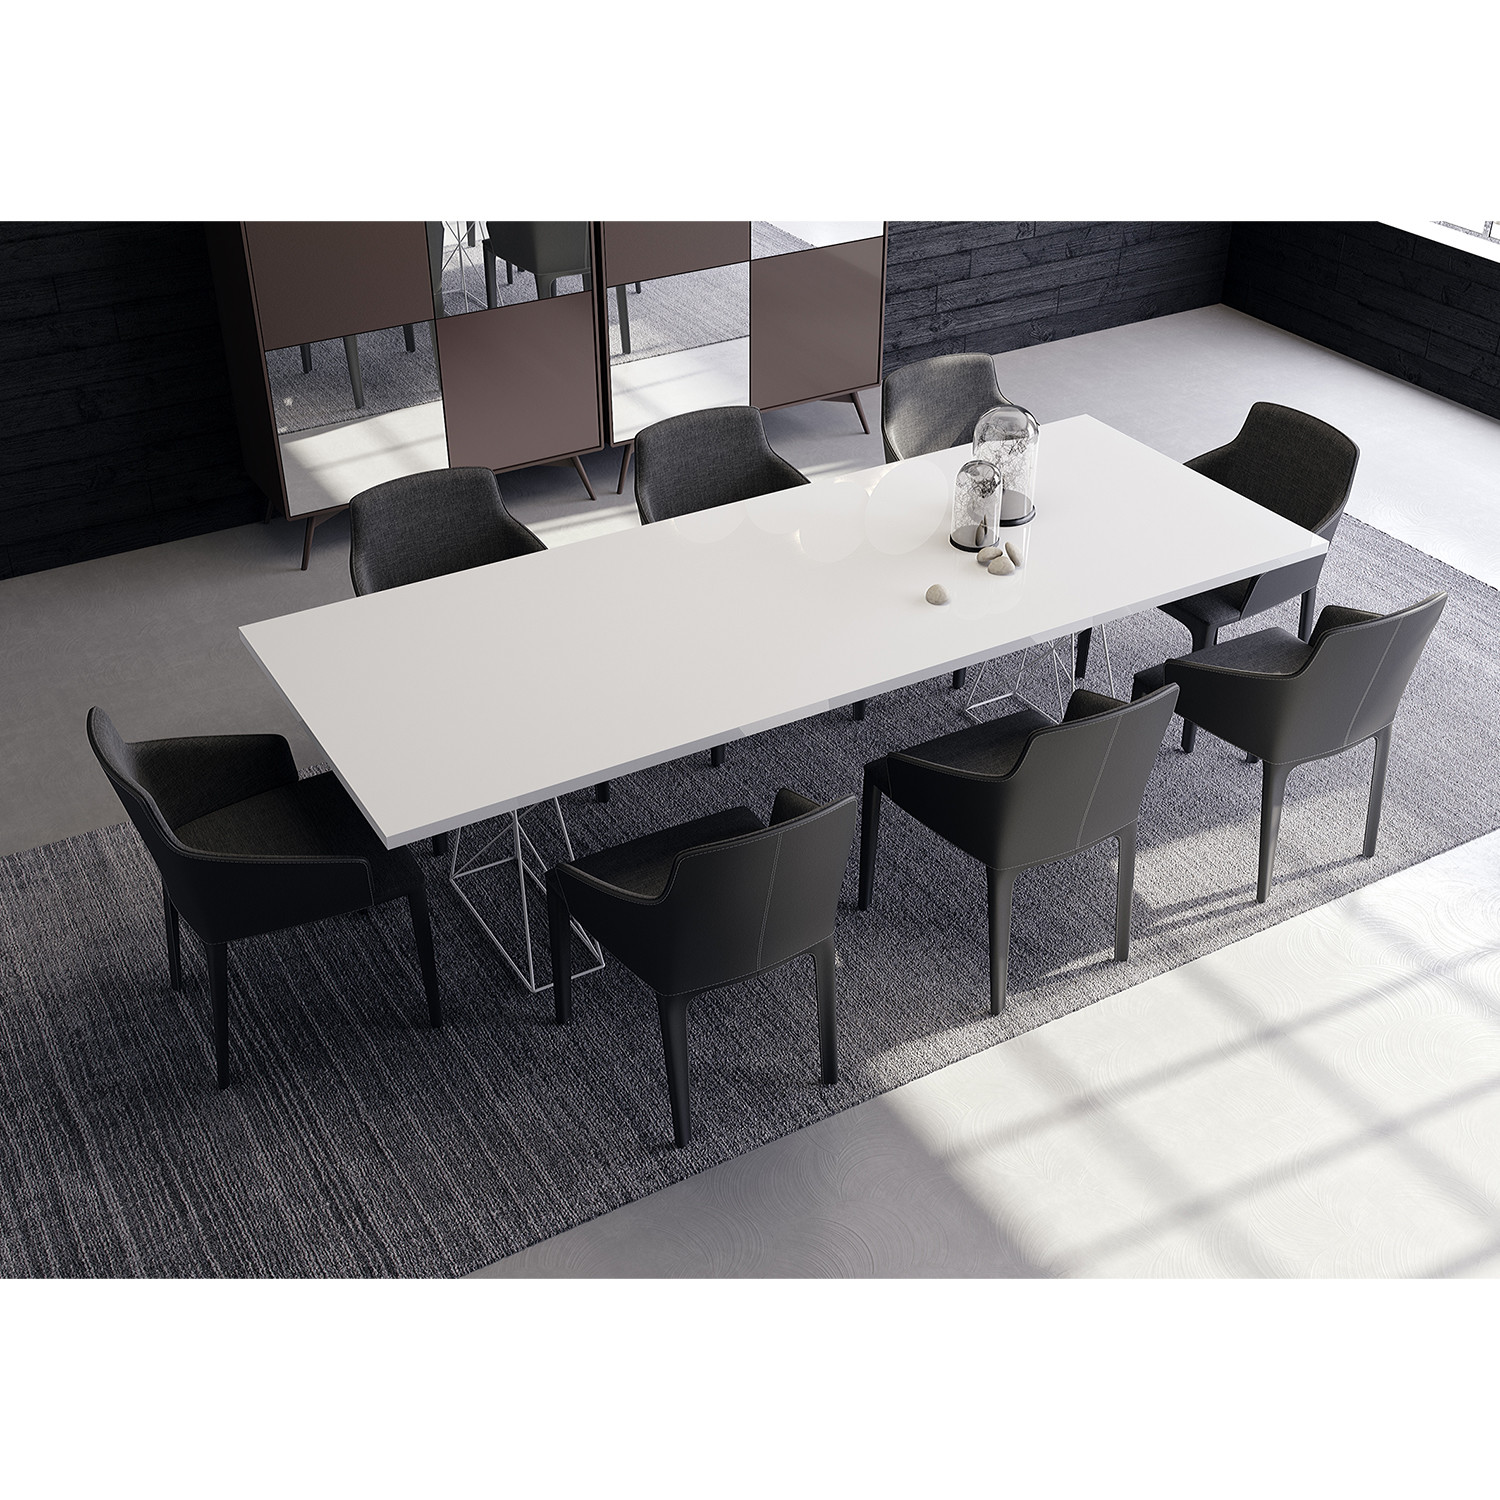 Curzon Dining Table White Lacquer Small 87 Quot L X 39 Quot W X